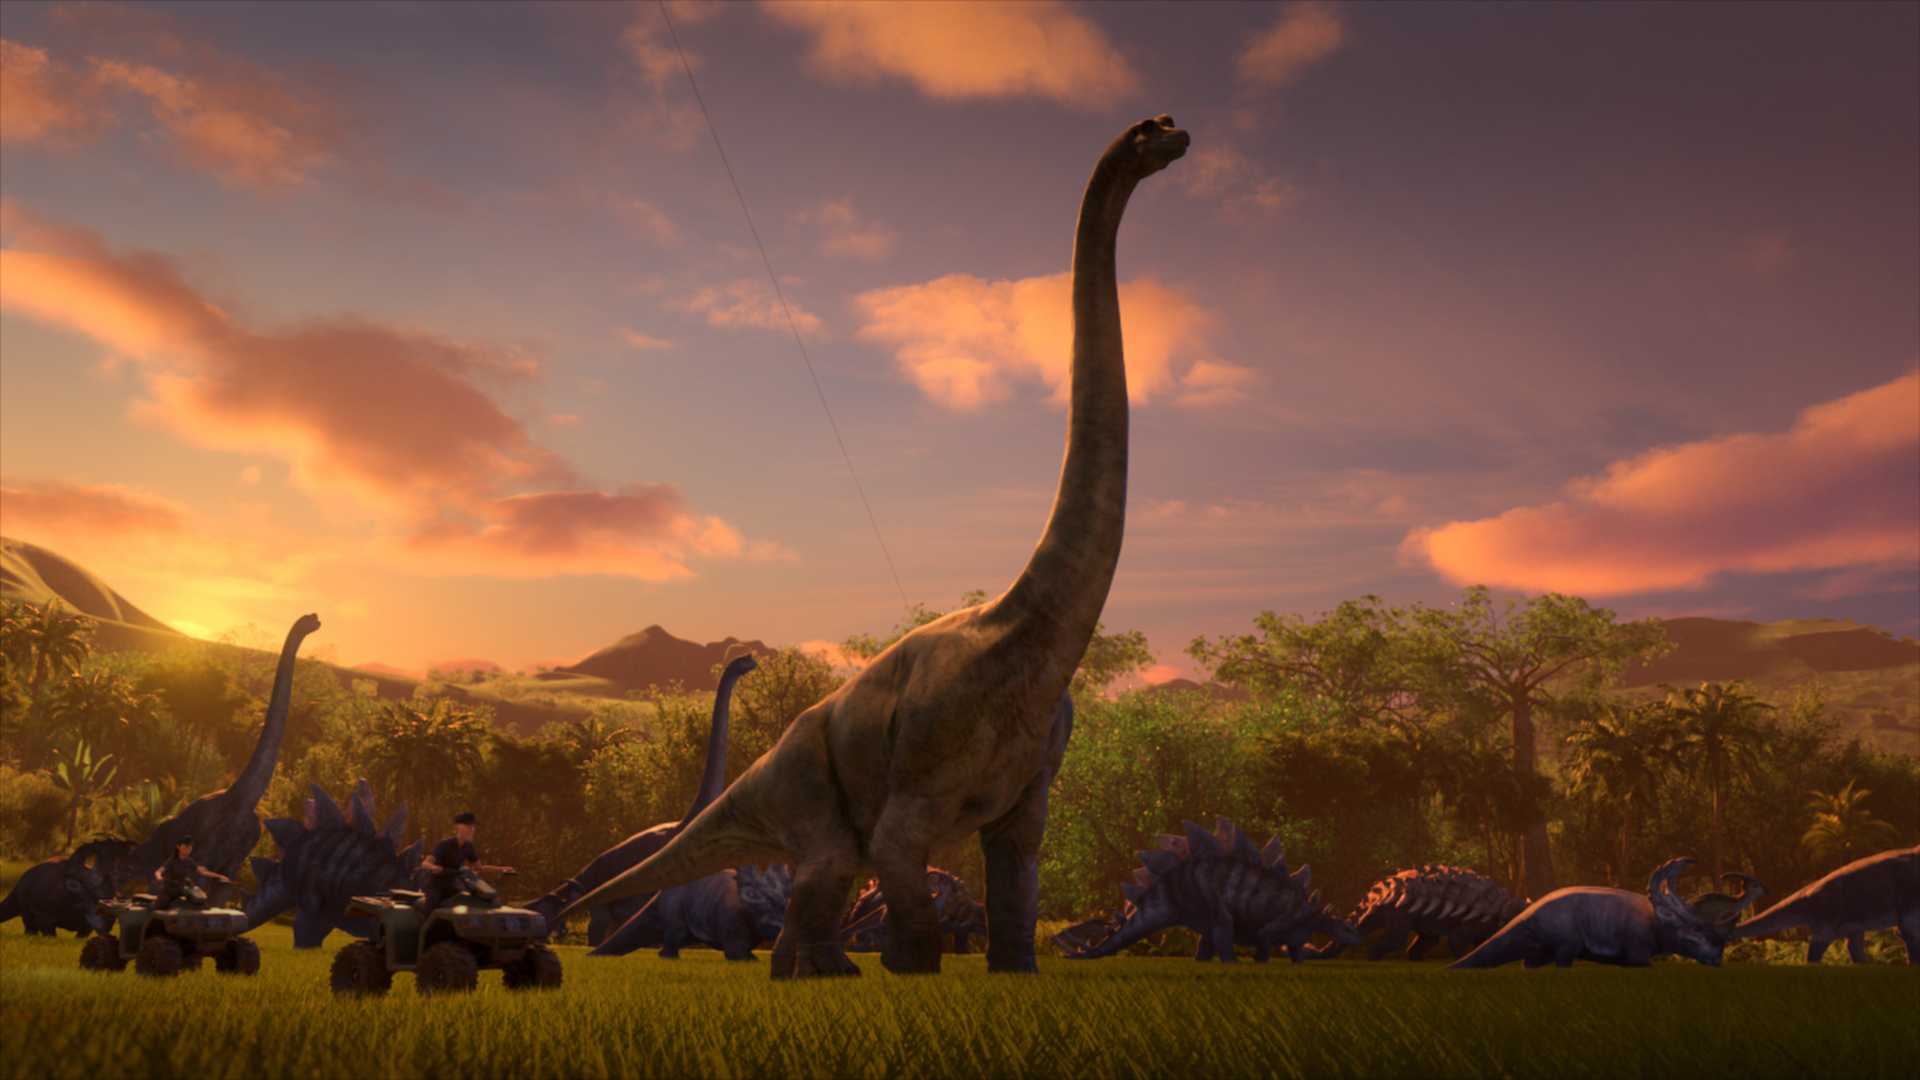 New York Comic Con announces Jurassic World: Camp Cretaceous panel in October